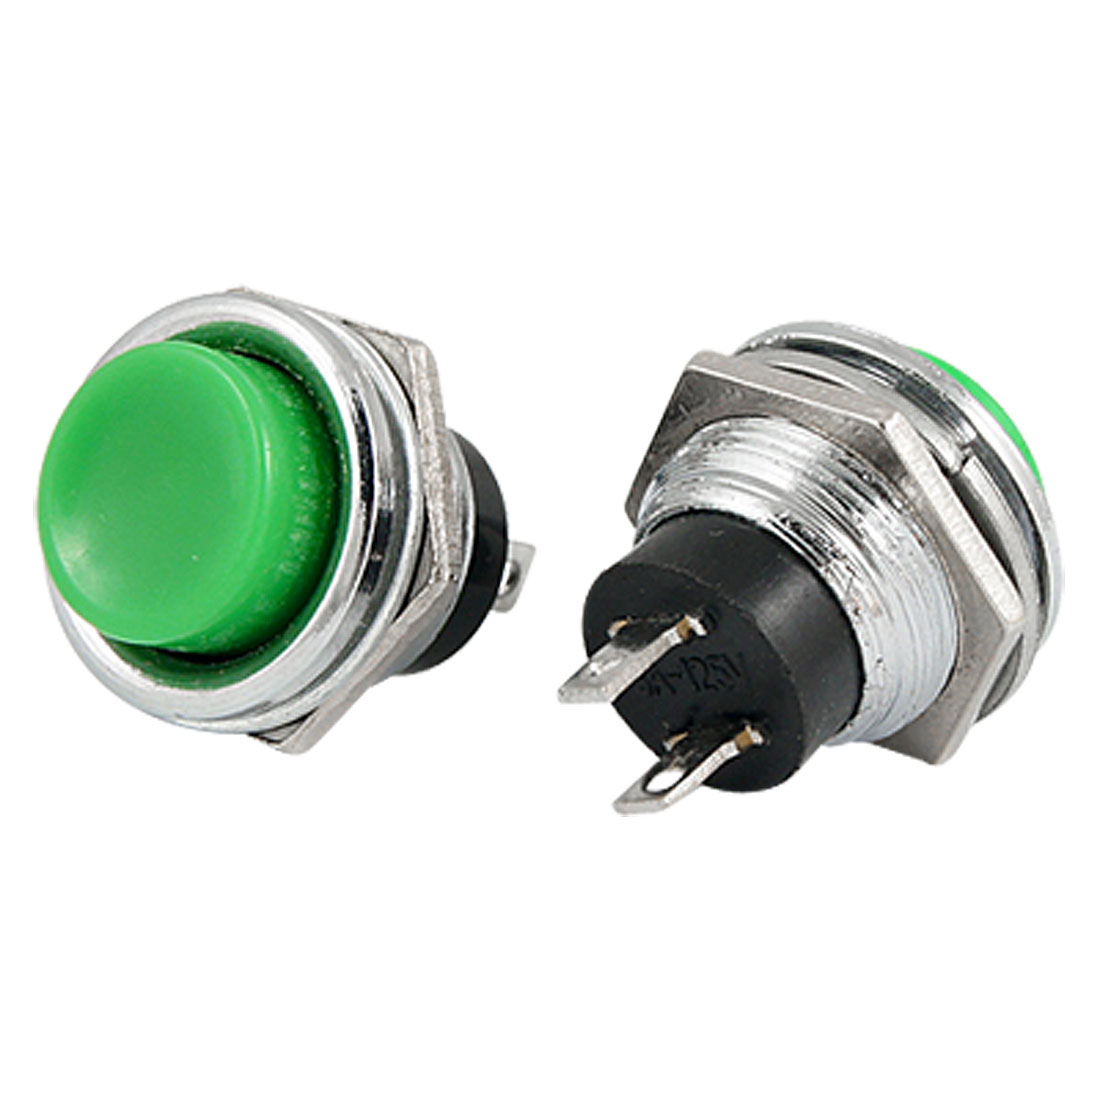 2 Pcs AC 125V 3A Round Green Cap Panel Mount Momentary Push Button Switch